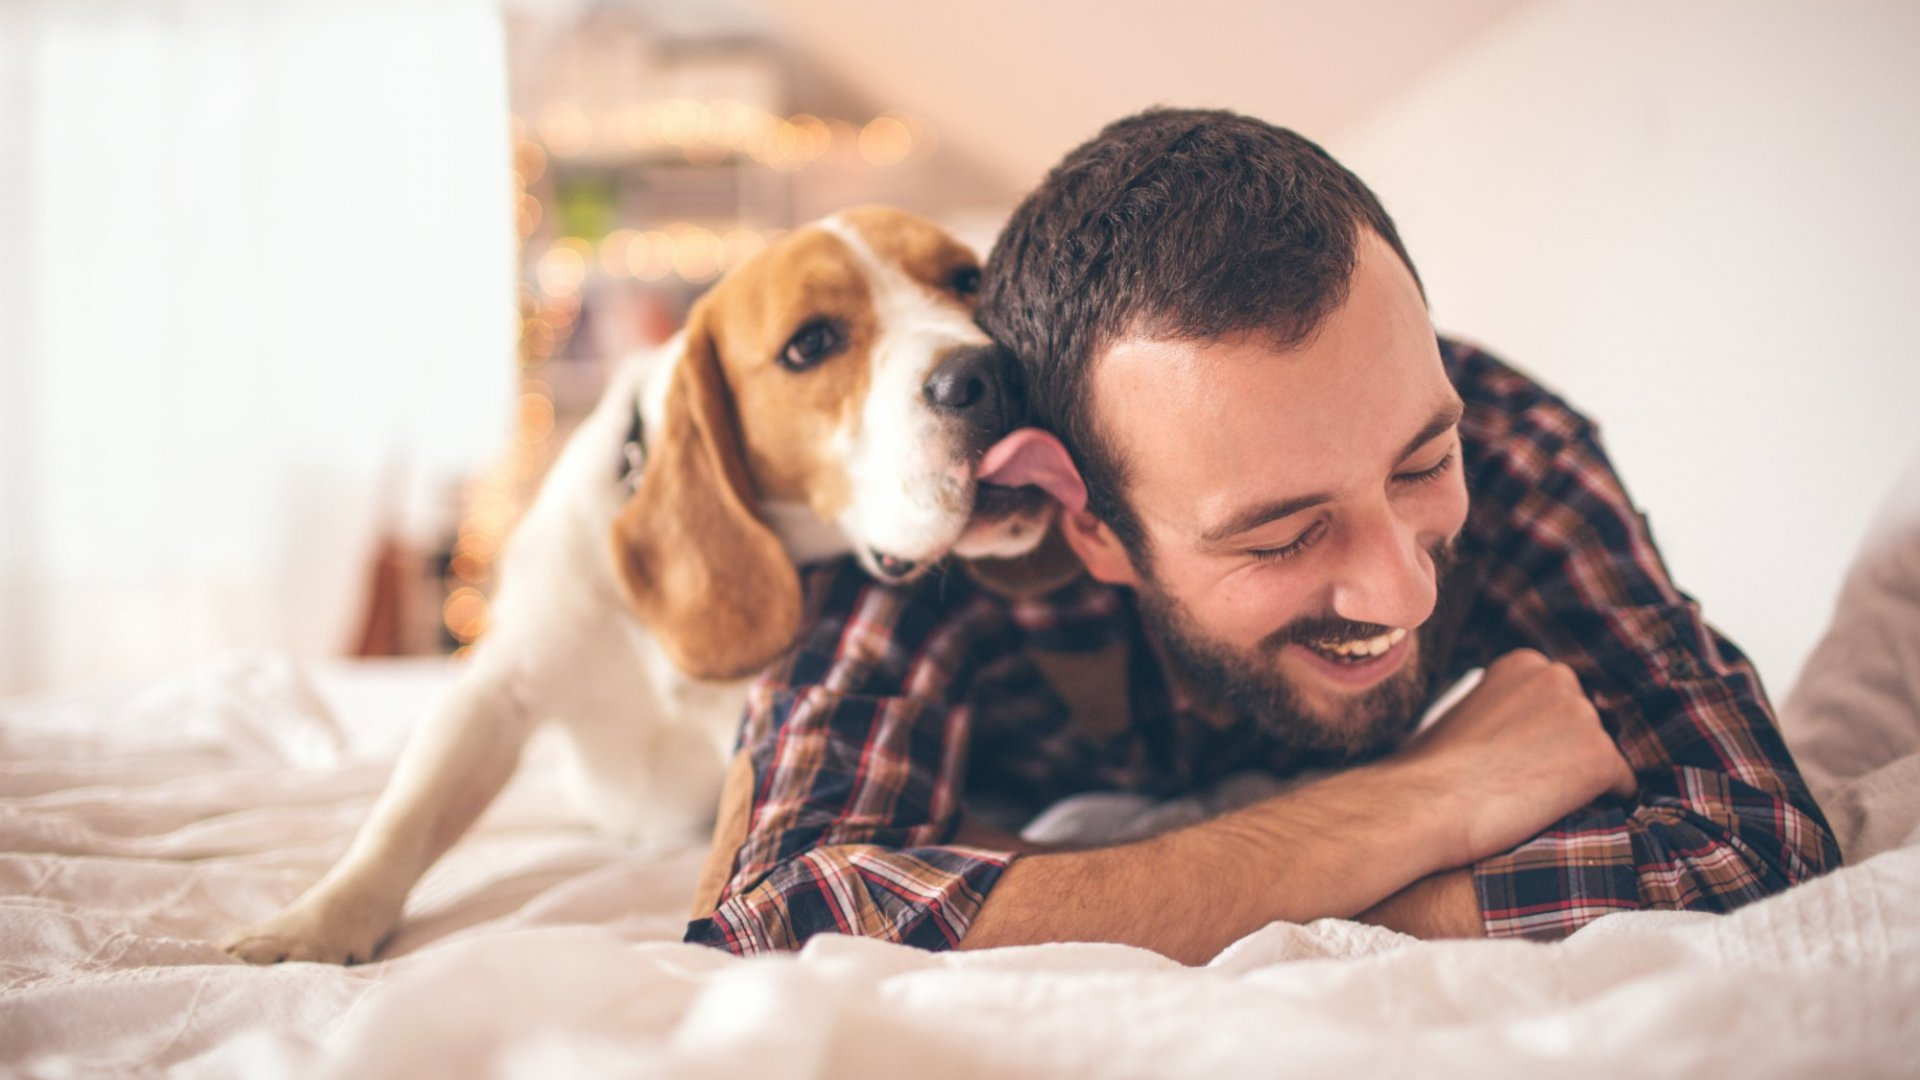 This Entrepreneur Coach Listened to His Dog and Put Fun Into His Work